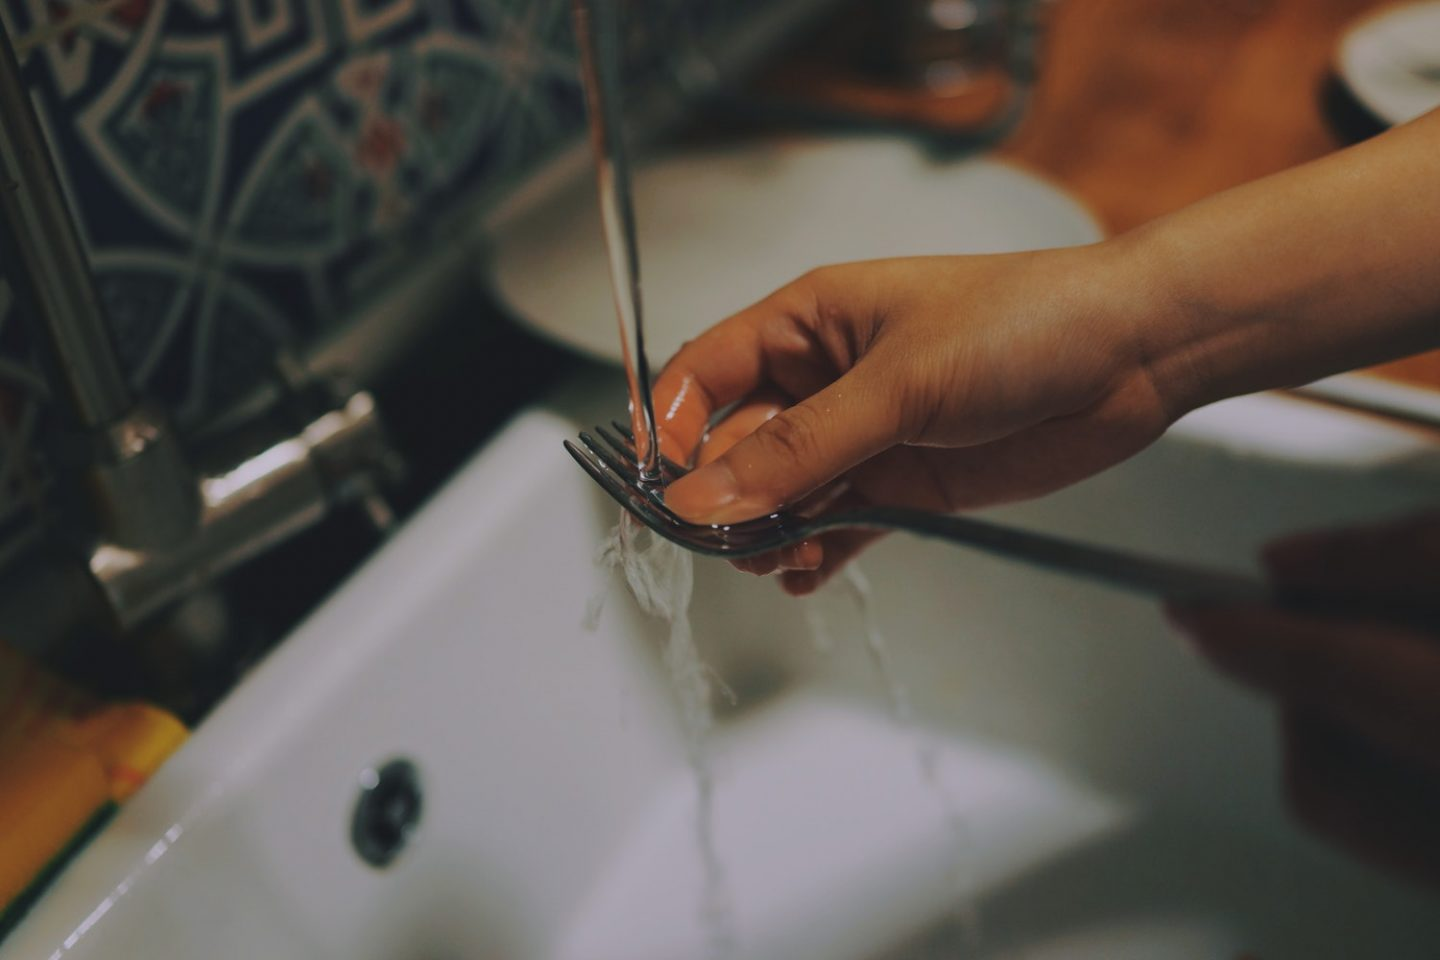 Avoid Serious Plumbing Problems by Getting an Annual Checkup